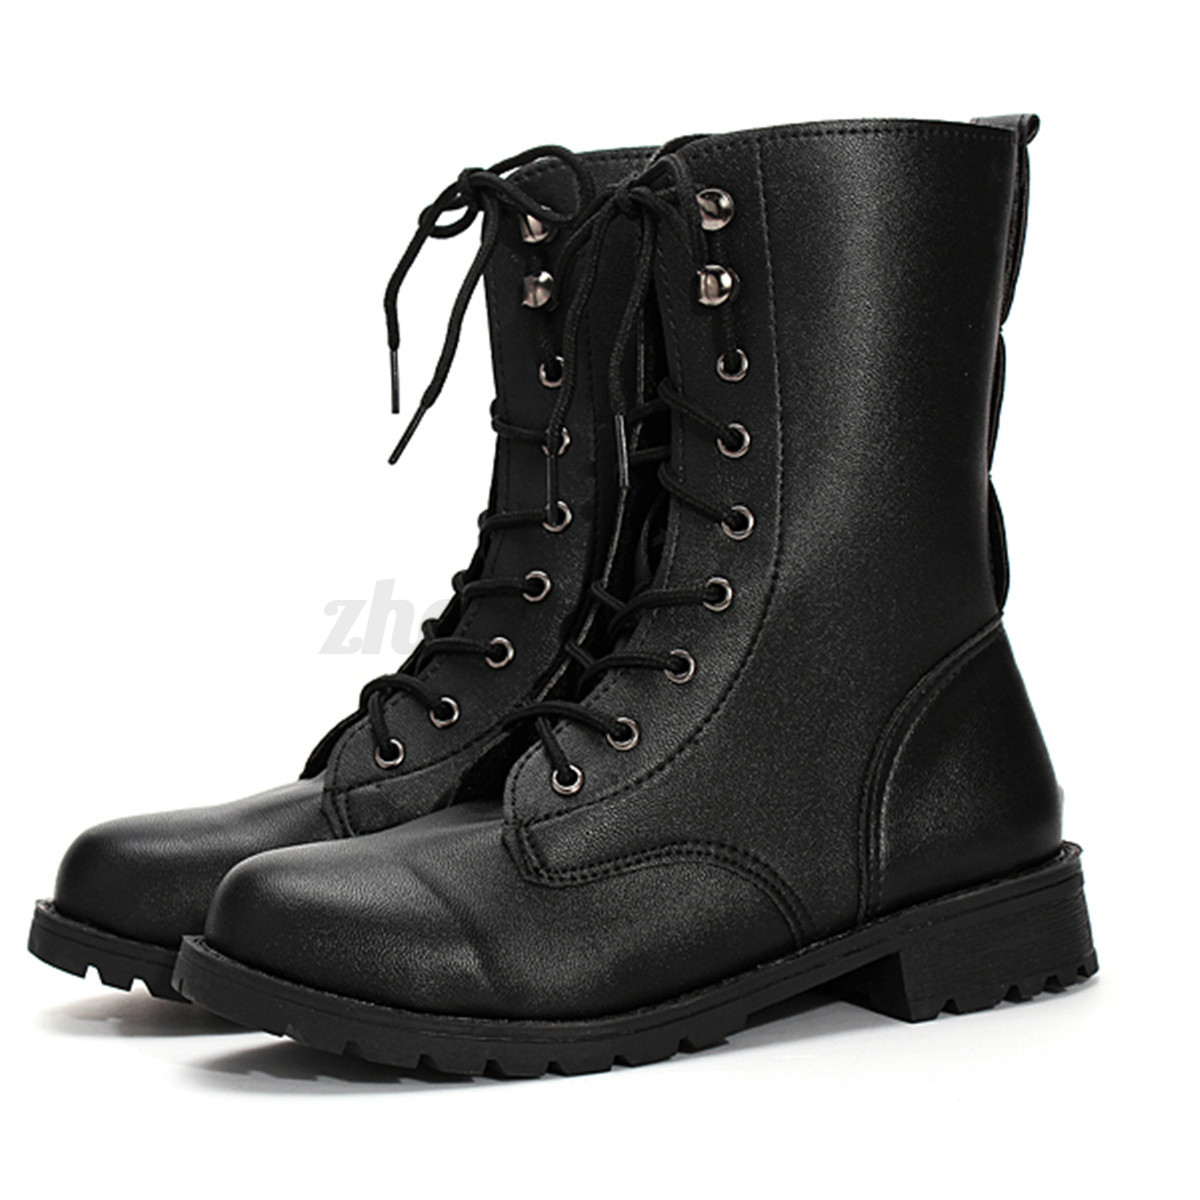 AU Womens Shoes Mid Calf Leather Gothic Martin Boots Lace Up Zip Military Shoes*